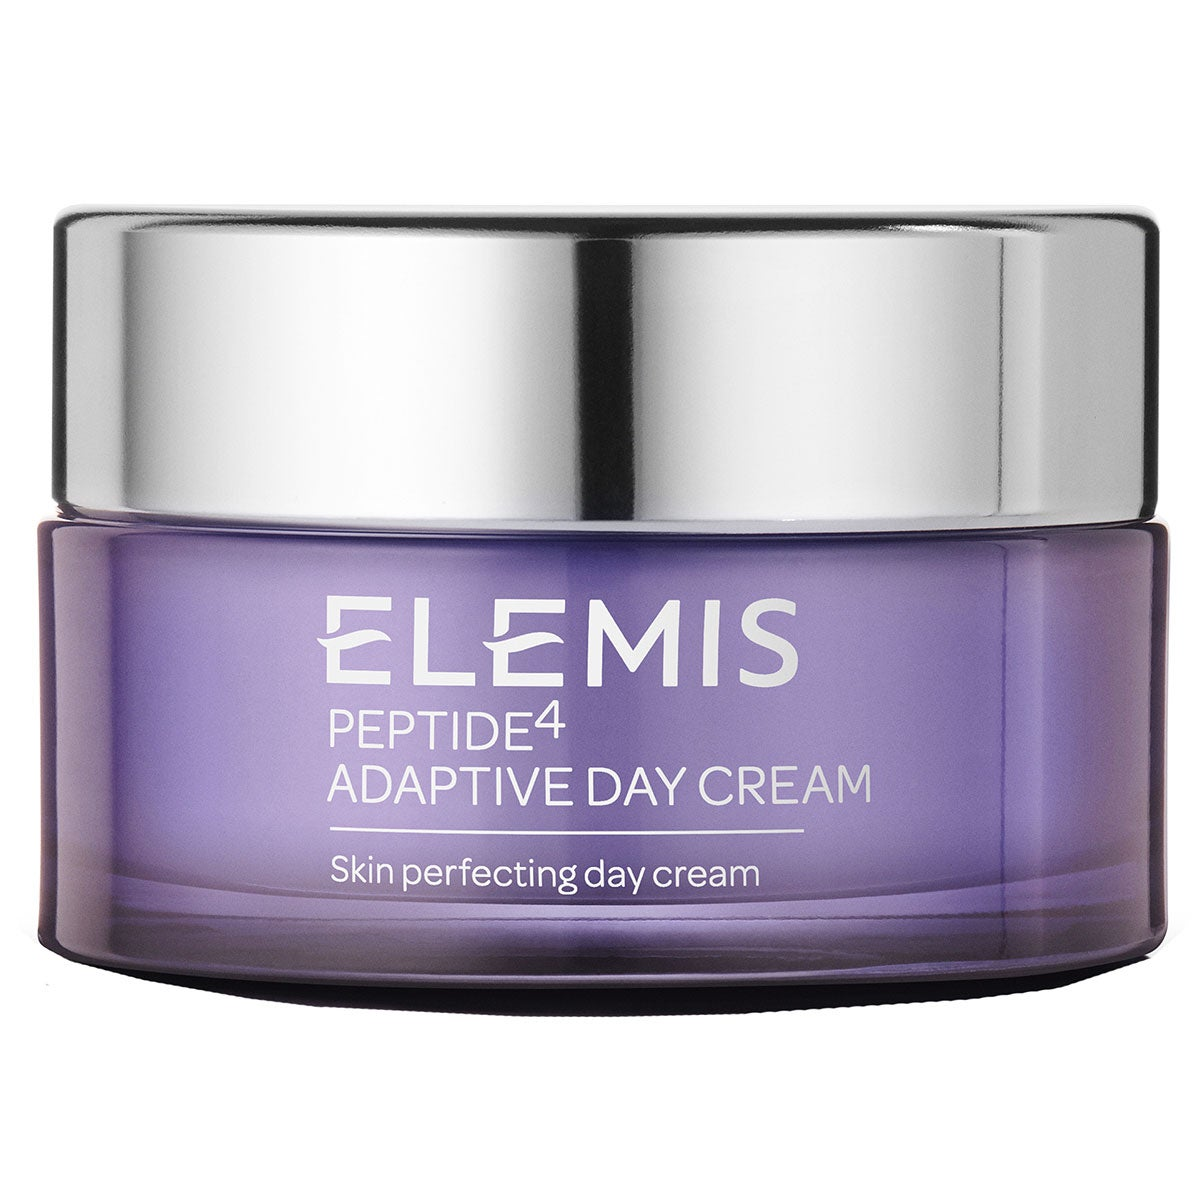 Peptide4 Adaptive Day Cream,  Elemis Dagkräm